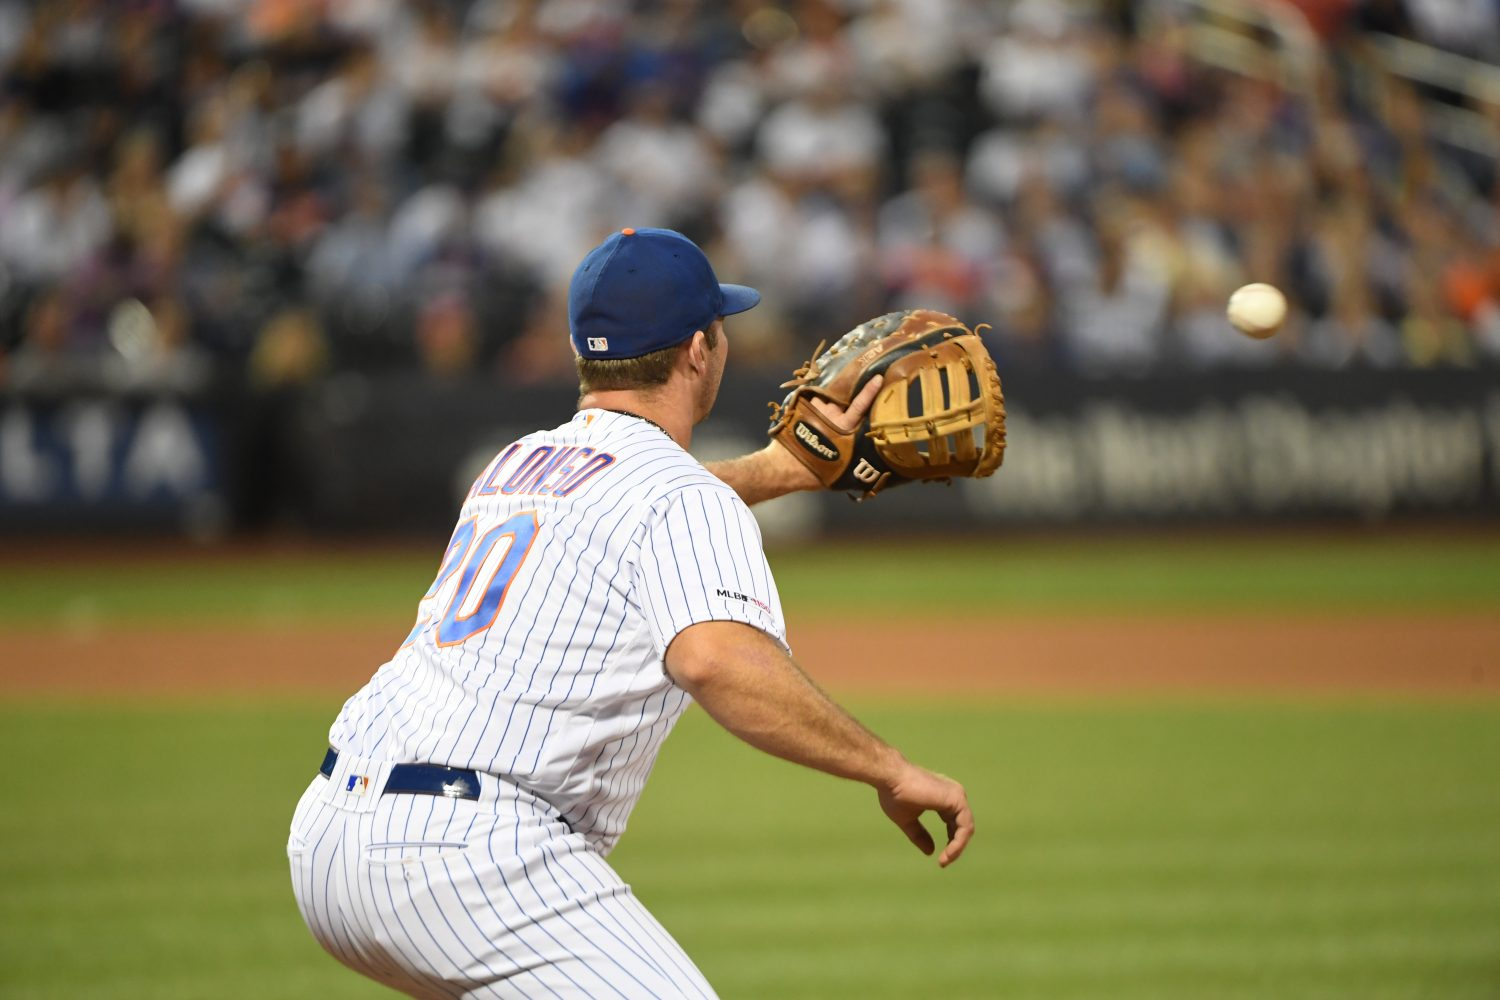 Pete Alonso Fielding a Ball at First Base